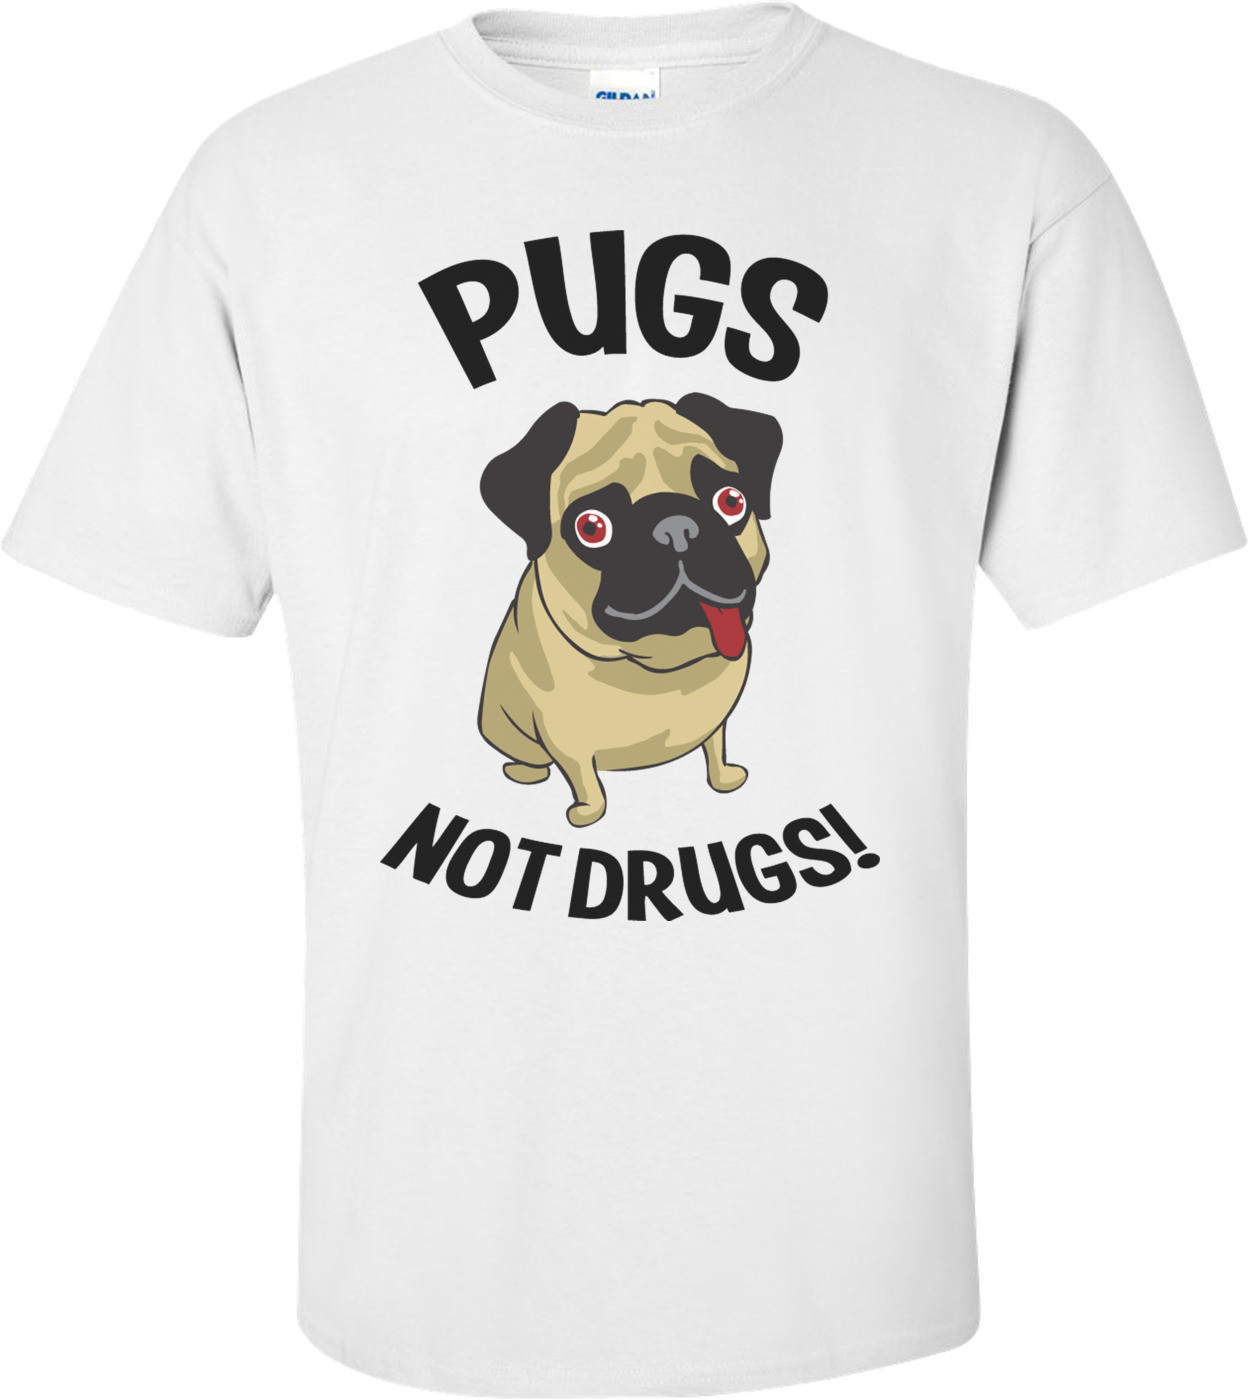 Pugs Not Drugs Funny Shirt